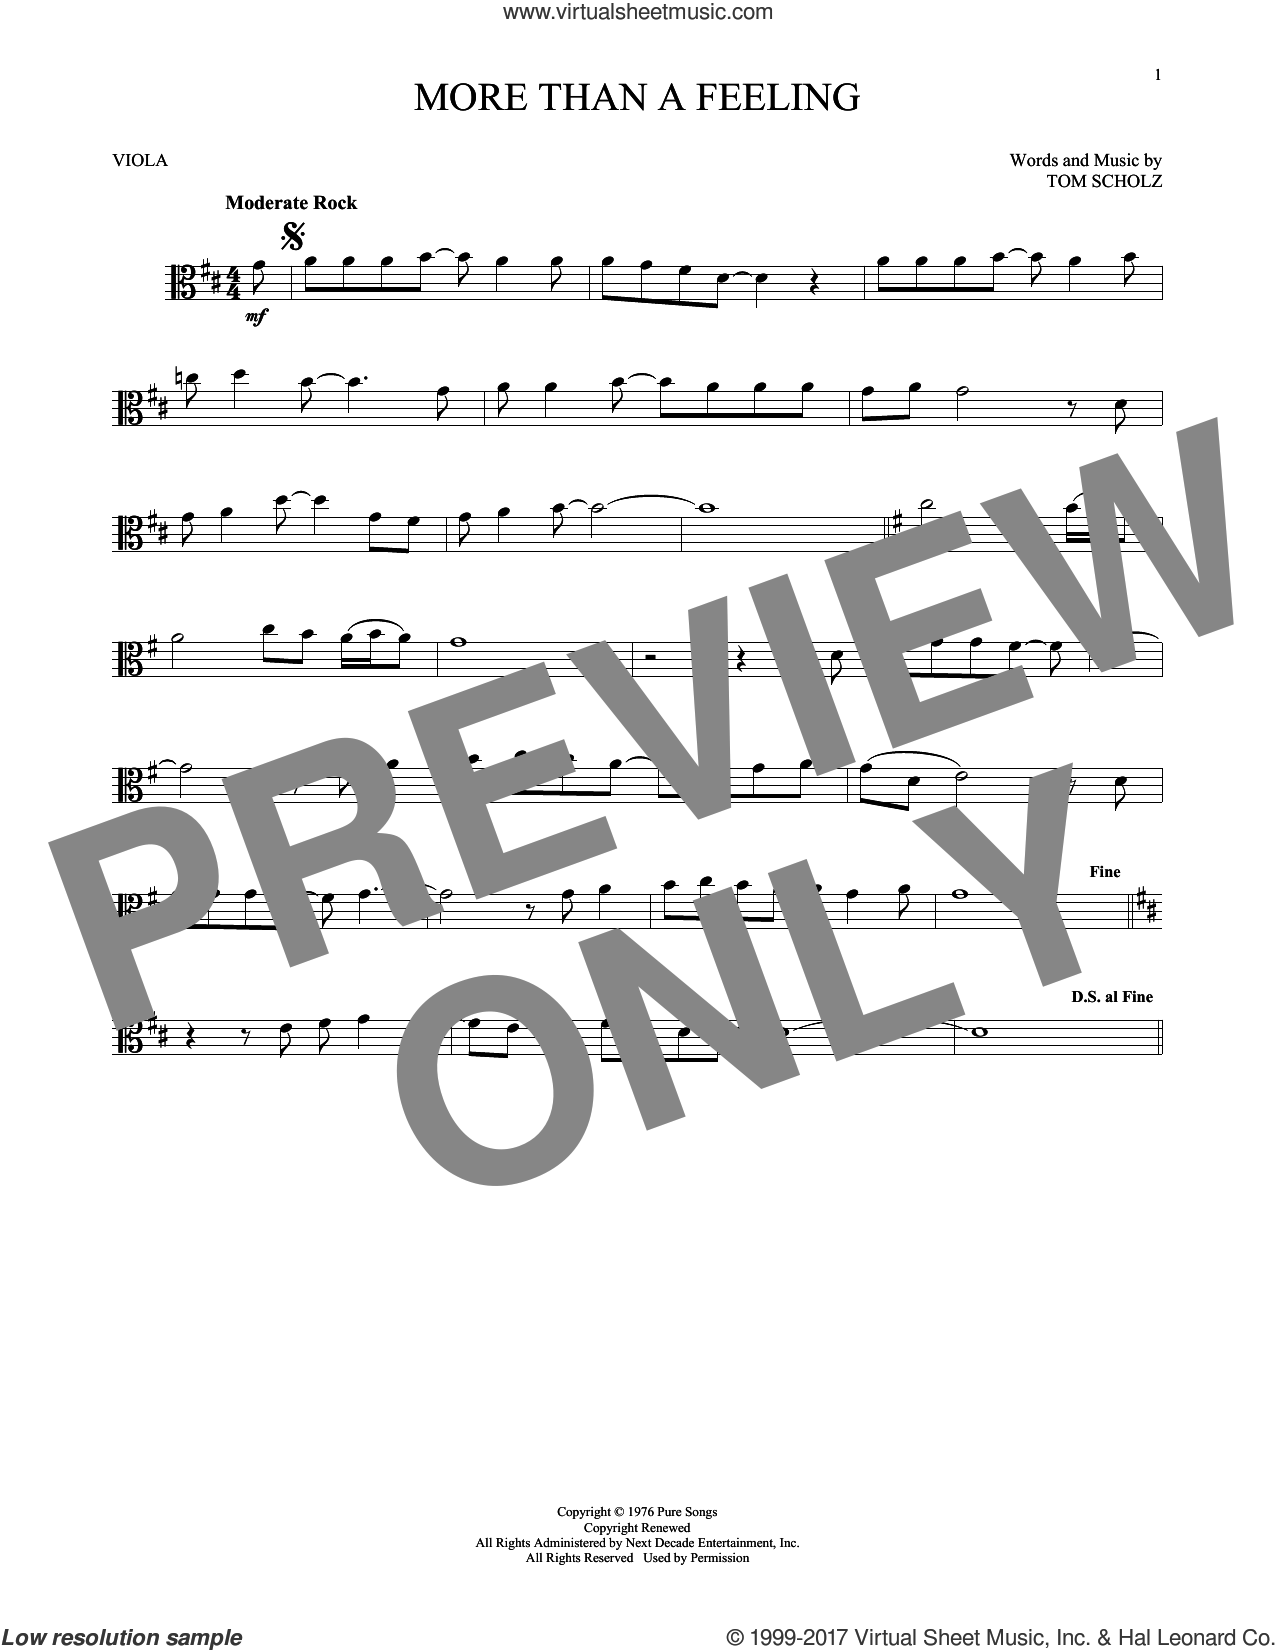 More Than A Feeling sheet music for viola solo by Boston and Tom Scholz, intermediate skill level